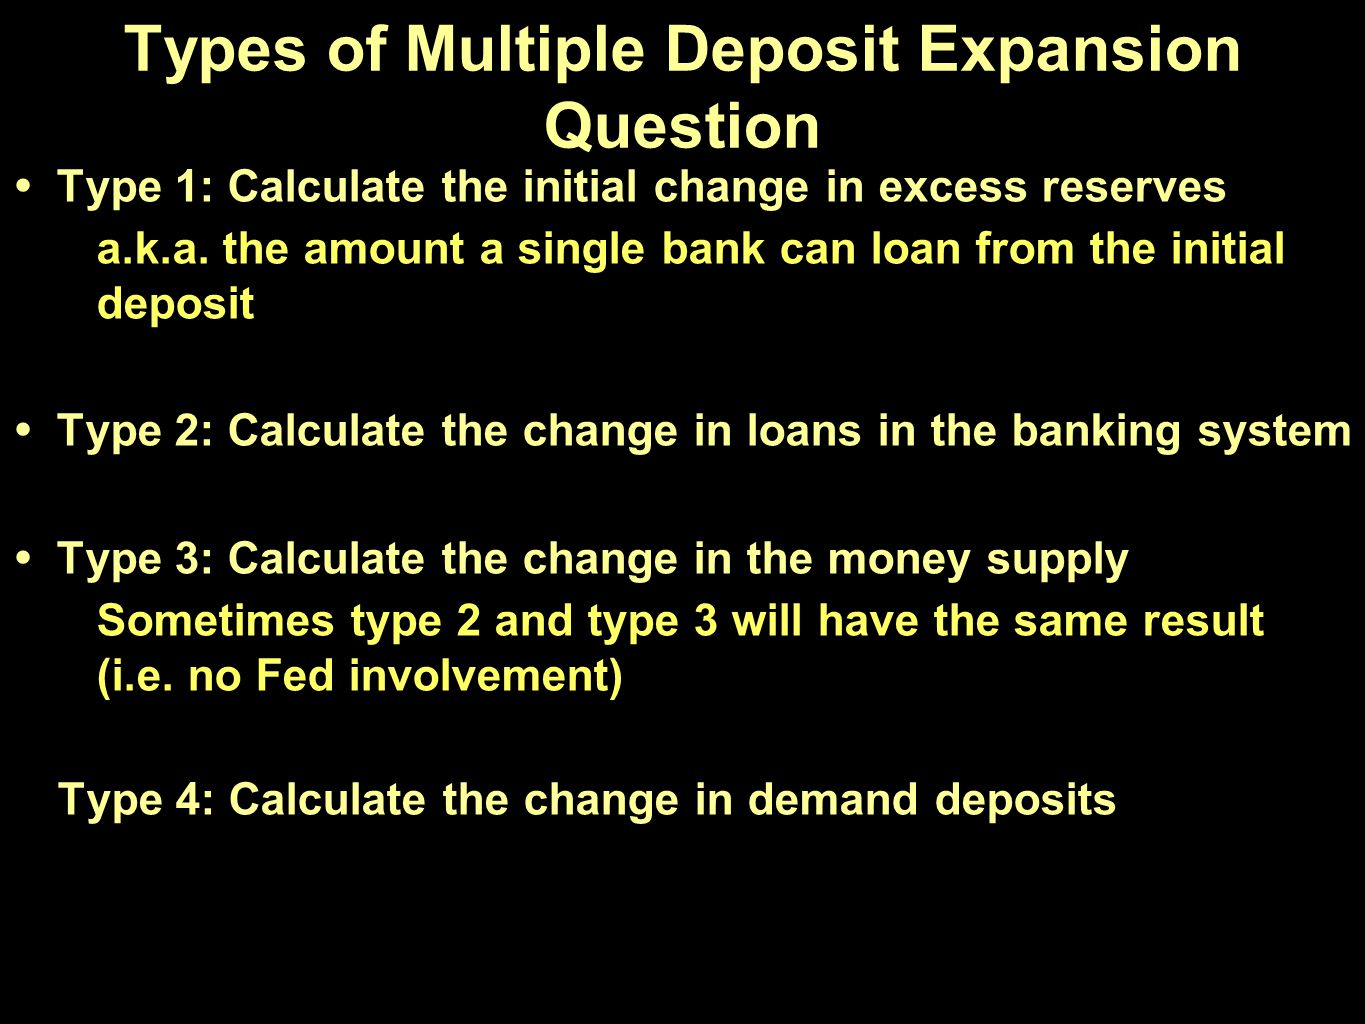 Types of Multiple Deposit Expansion Question